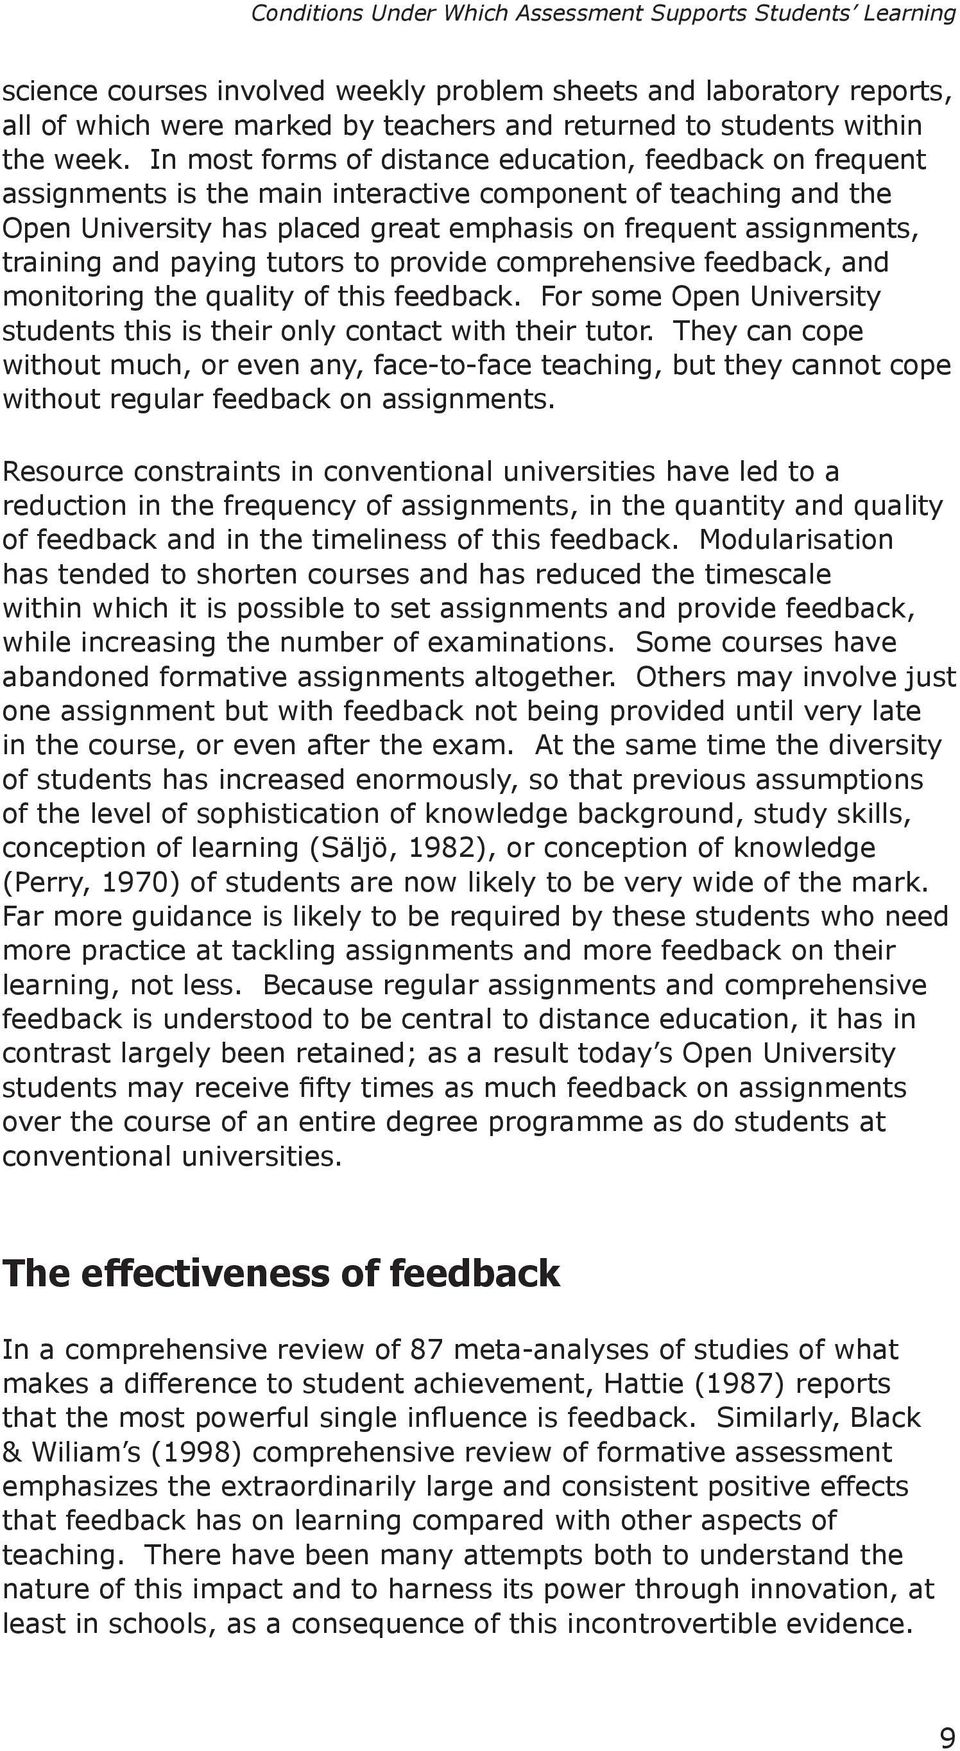 In most forms of distance education, feedback on frequent assignments is the main interactive component of teaching and the Open University has placed great emphasis on frequent assignments, training